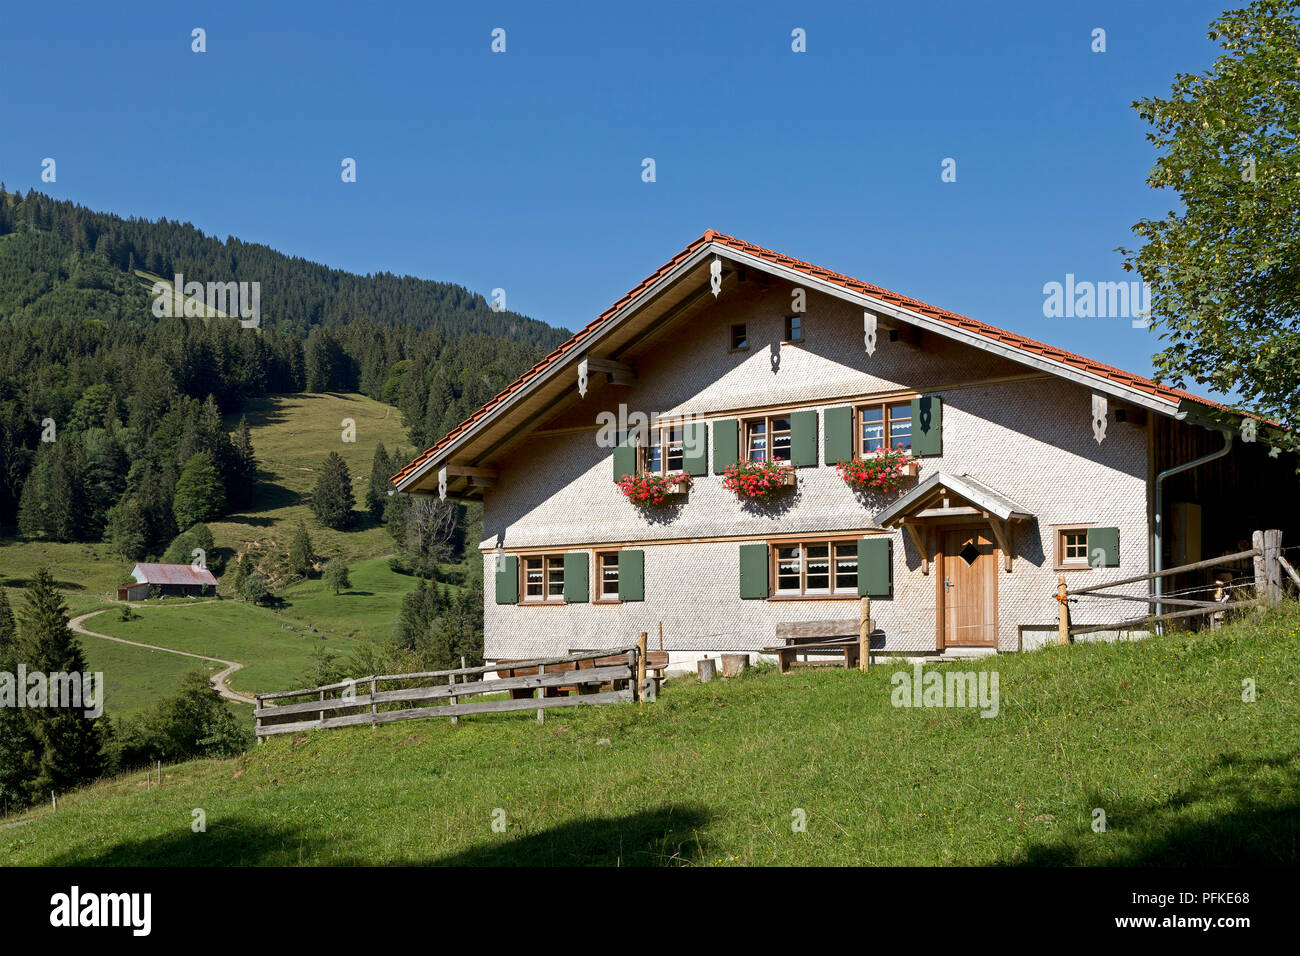 farm house at Hochgrat near Steibis, Allgaeu, Bavaria, Germany - Stock Image